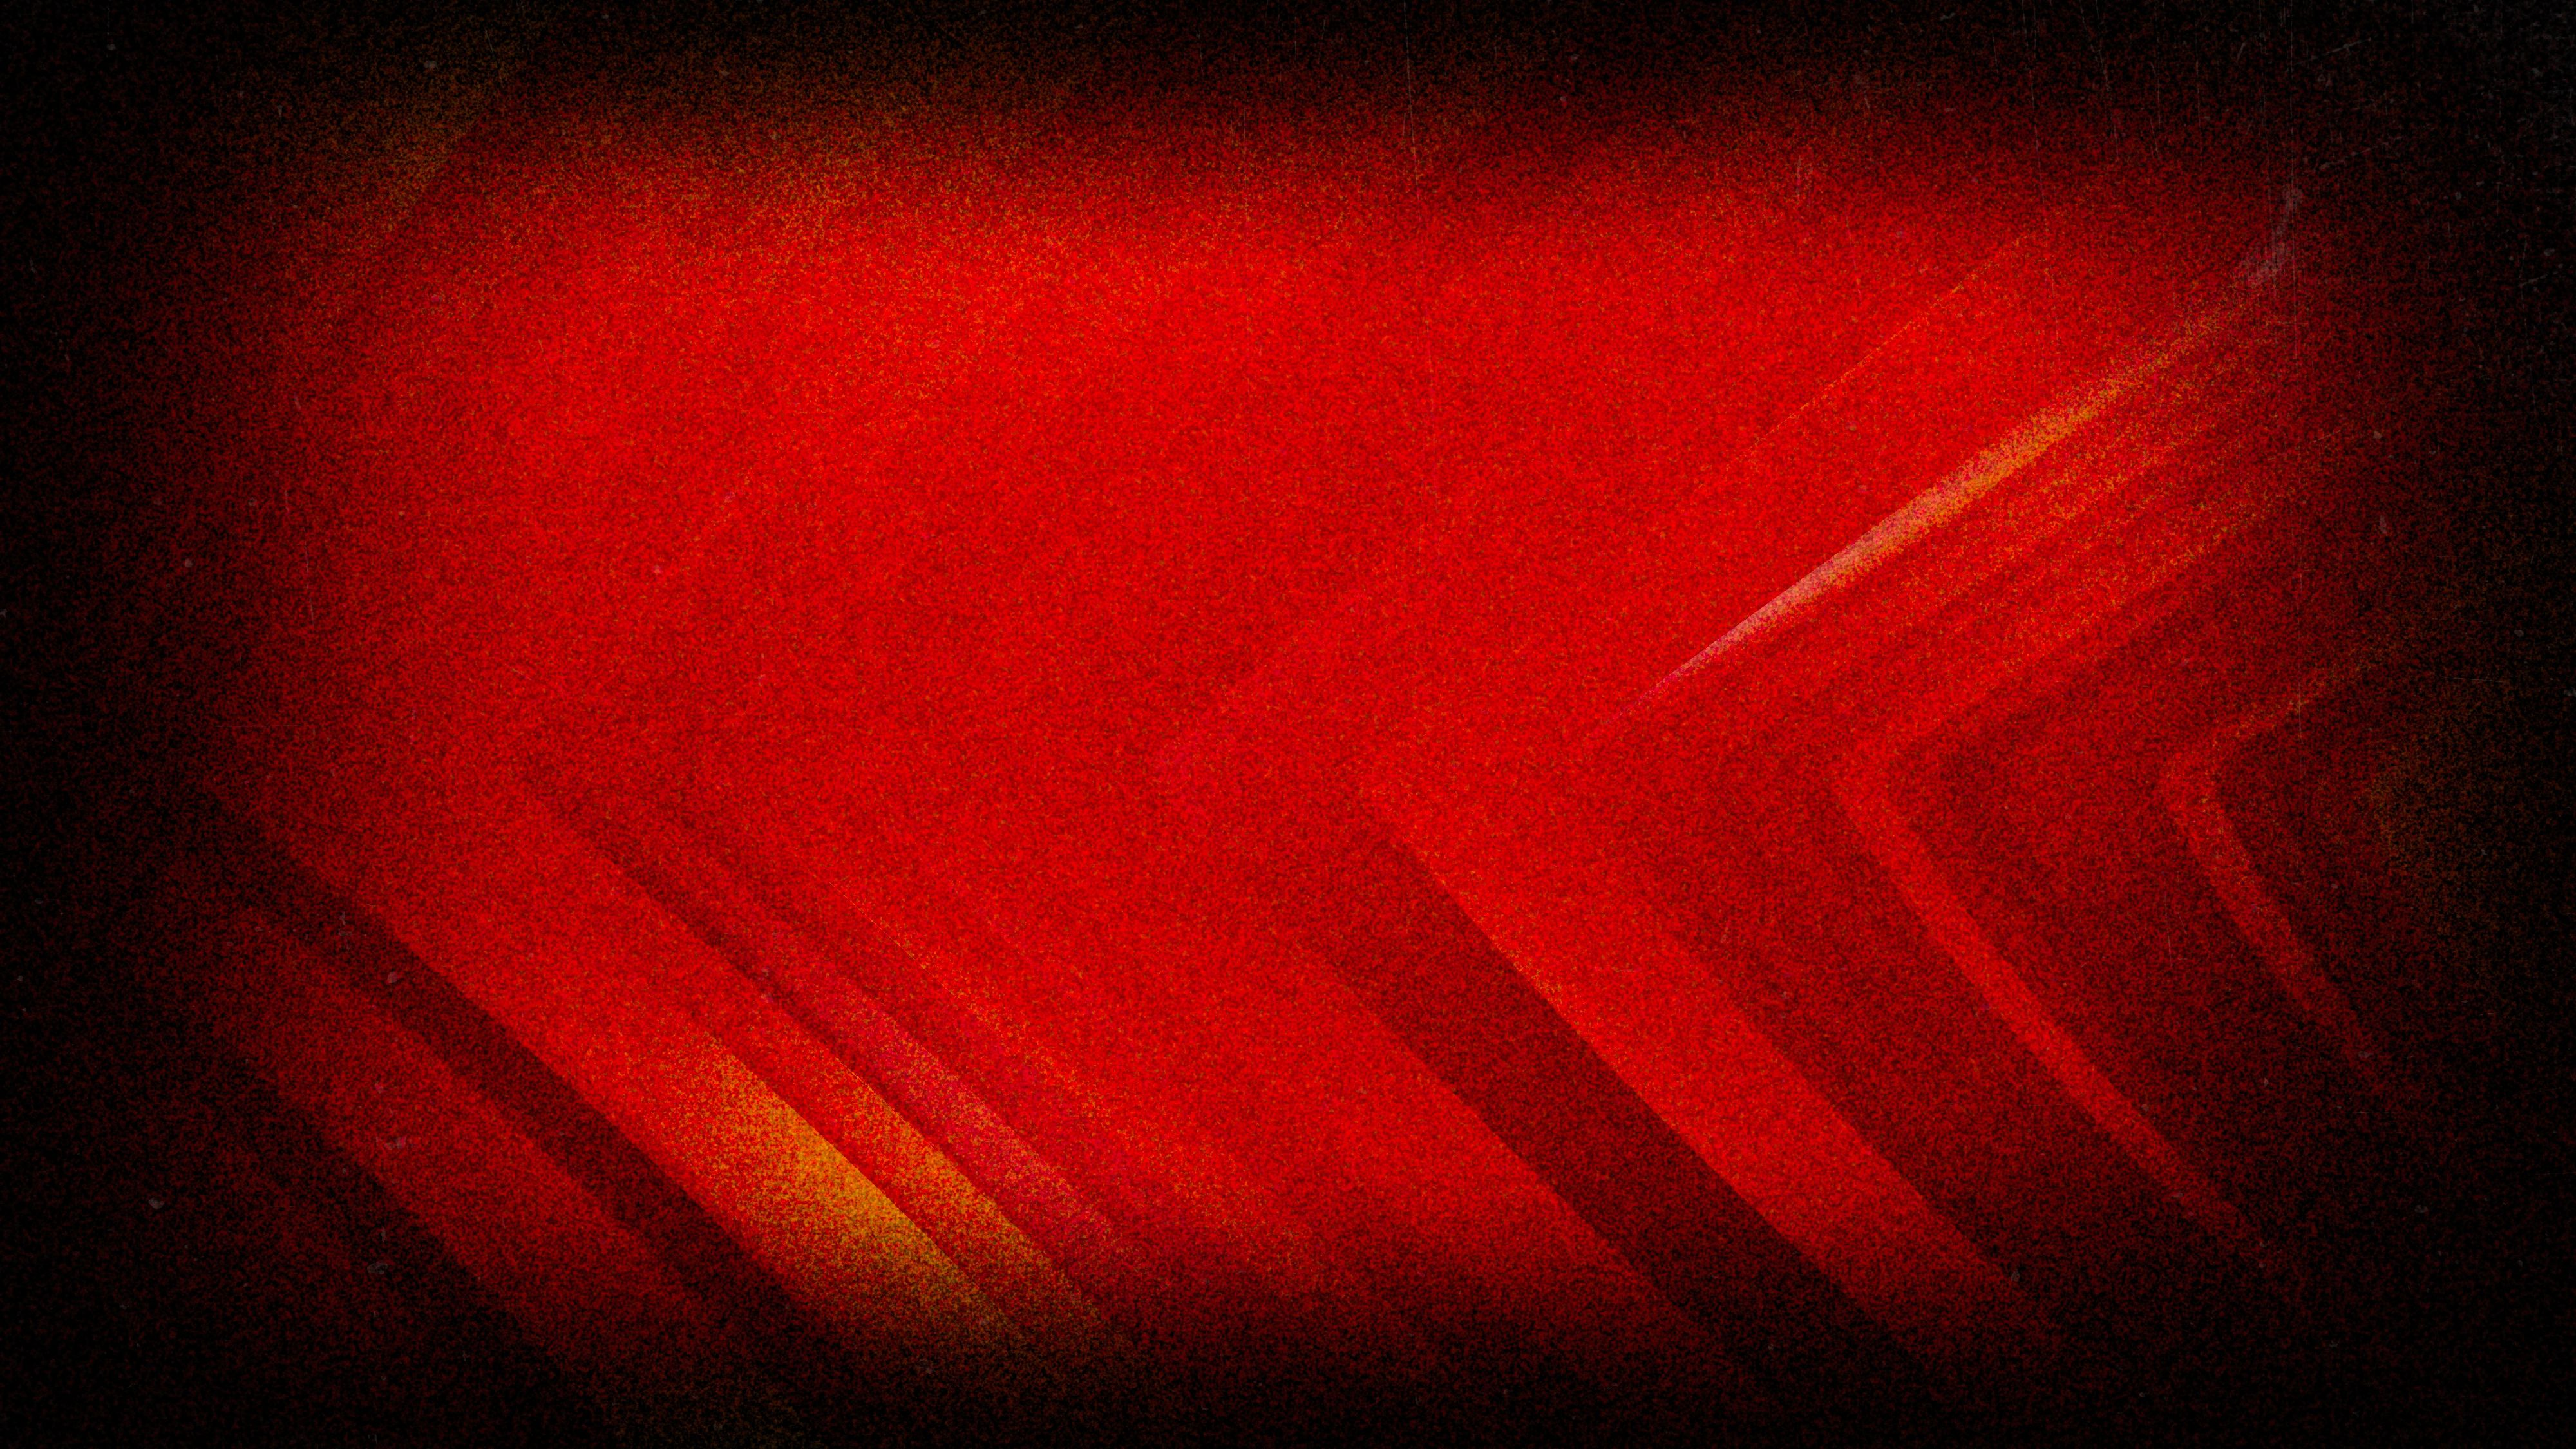 Red Maroon Light Free Background Image Design Graphicdesign Creative Wallpaper Backgro Free Background Images Red Background Images Background Images